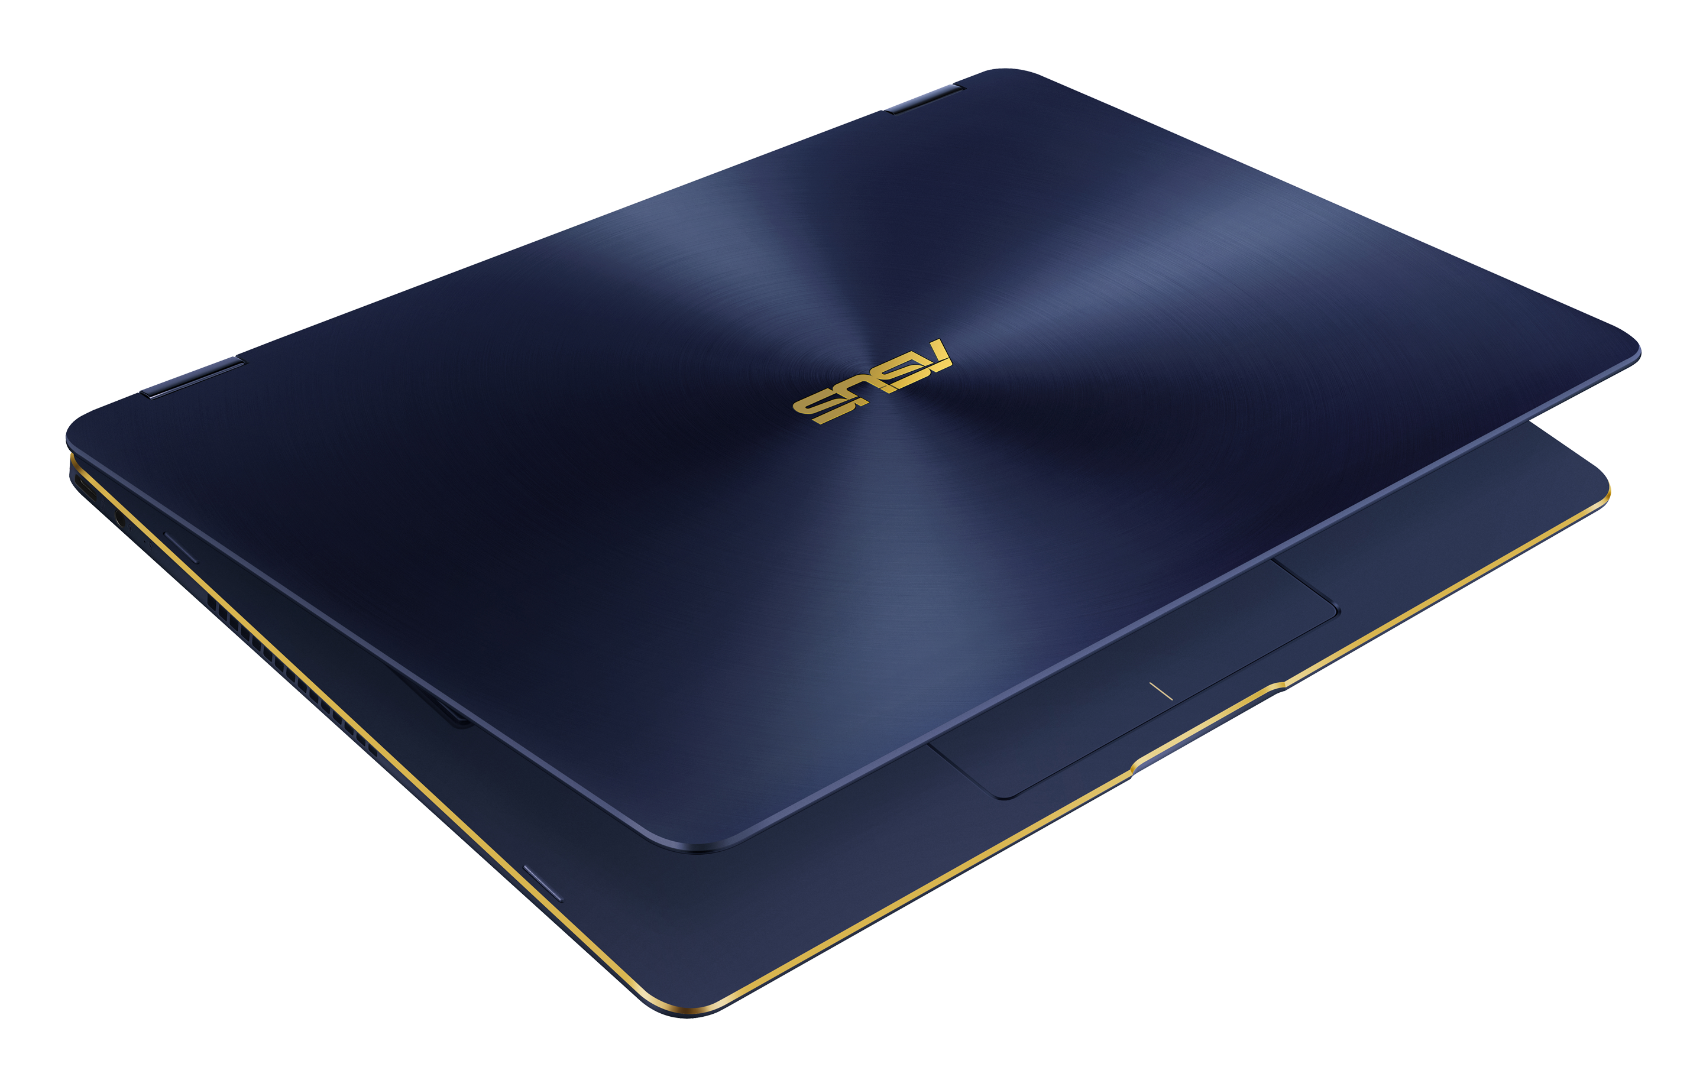 ASUS Announces ZenBook Flip 14 and Flip 15